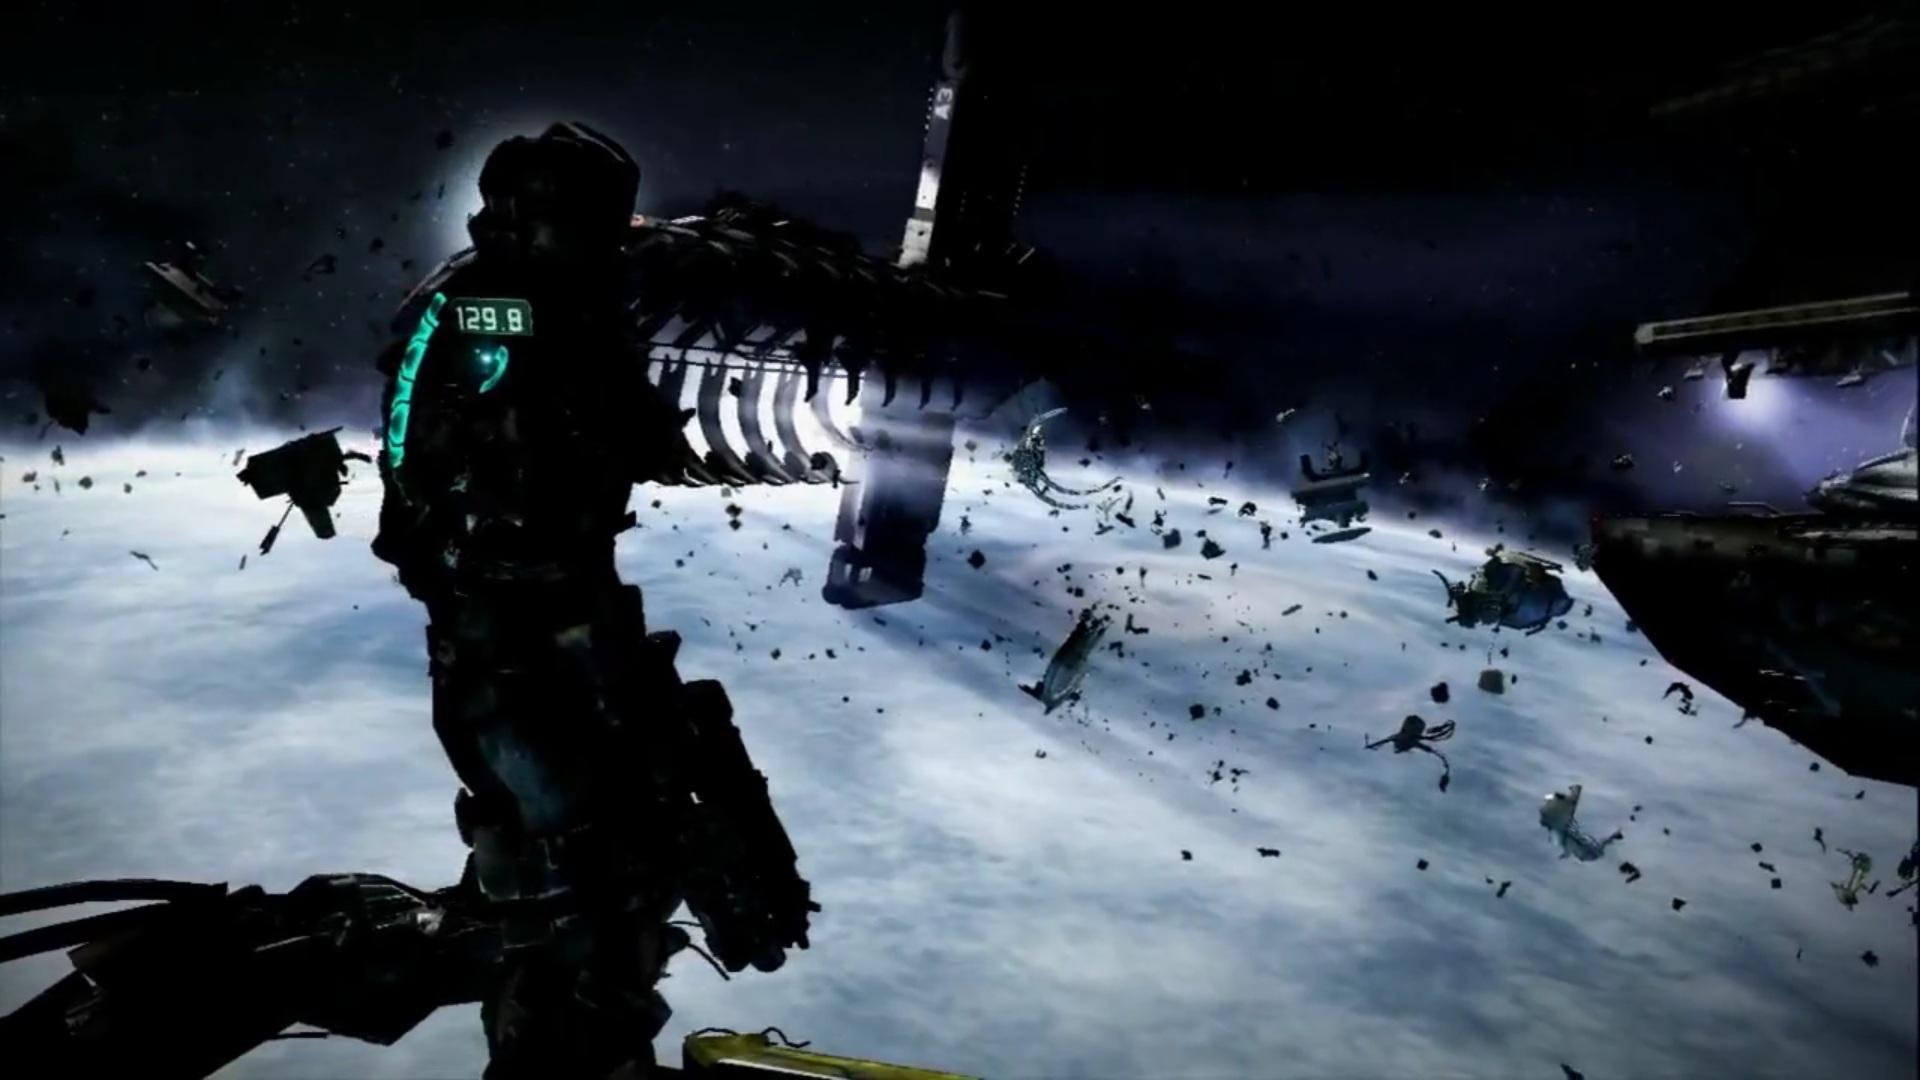 hd wallpaper dead space wallpapers55com   Best Wallpapers for PCs 1920x1080